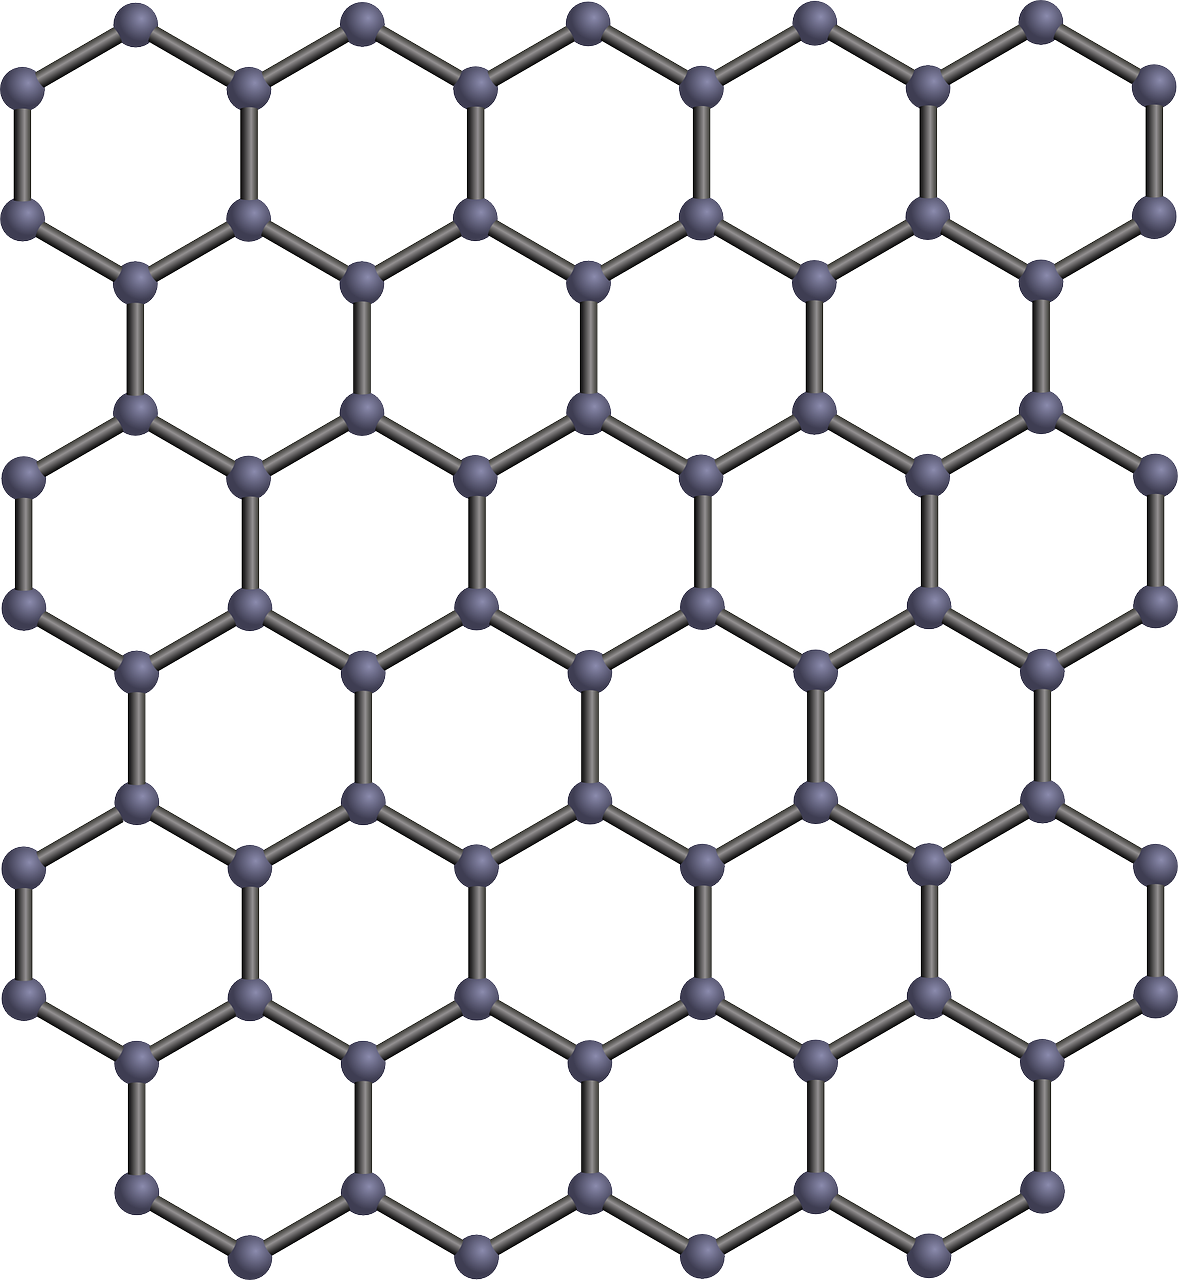 New Technique that Turns Carbon into Graphene in Few Seconds